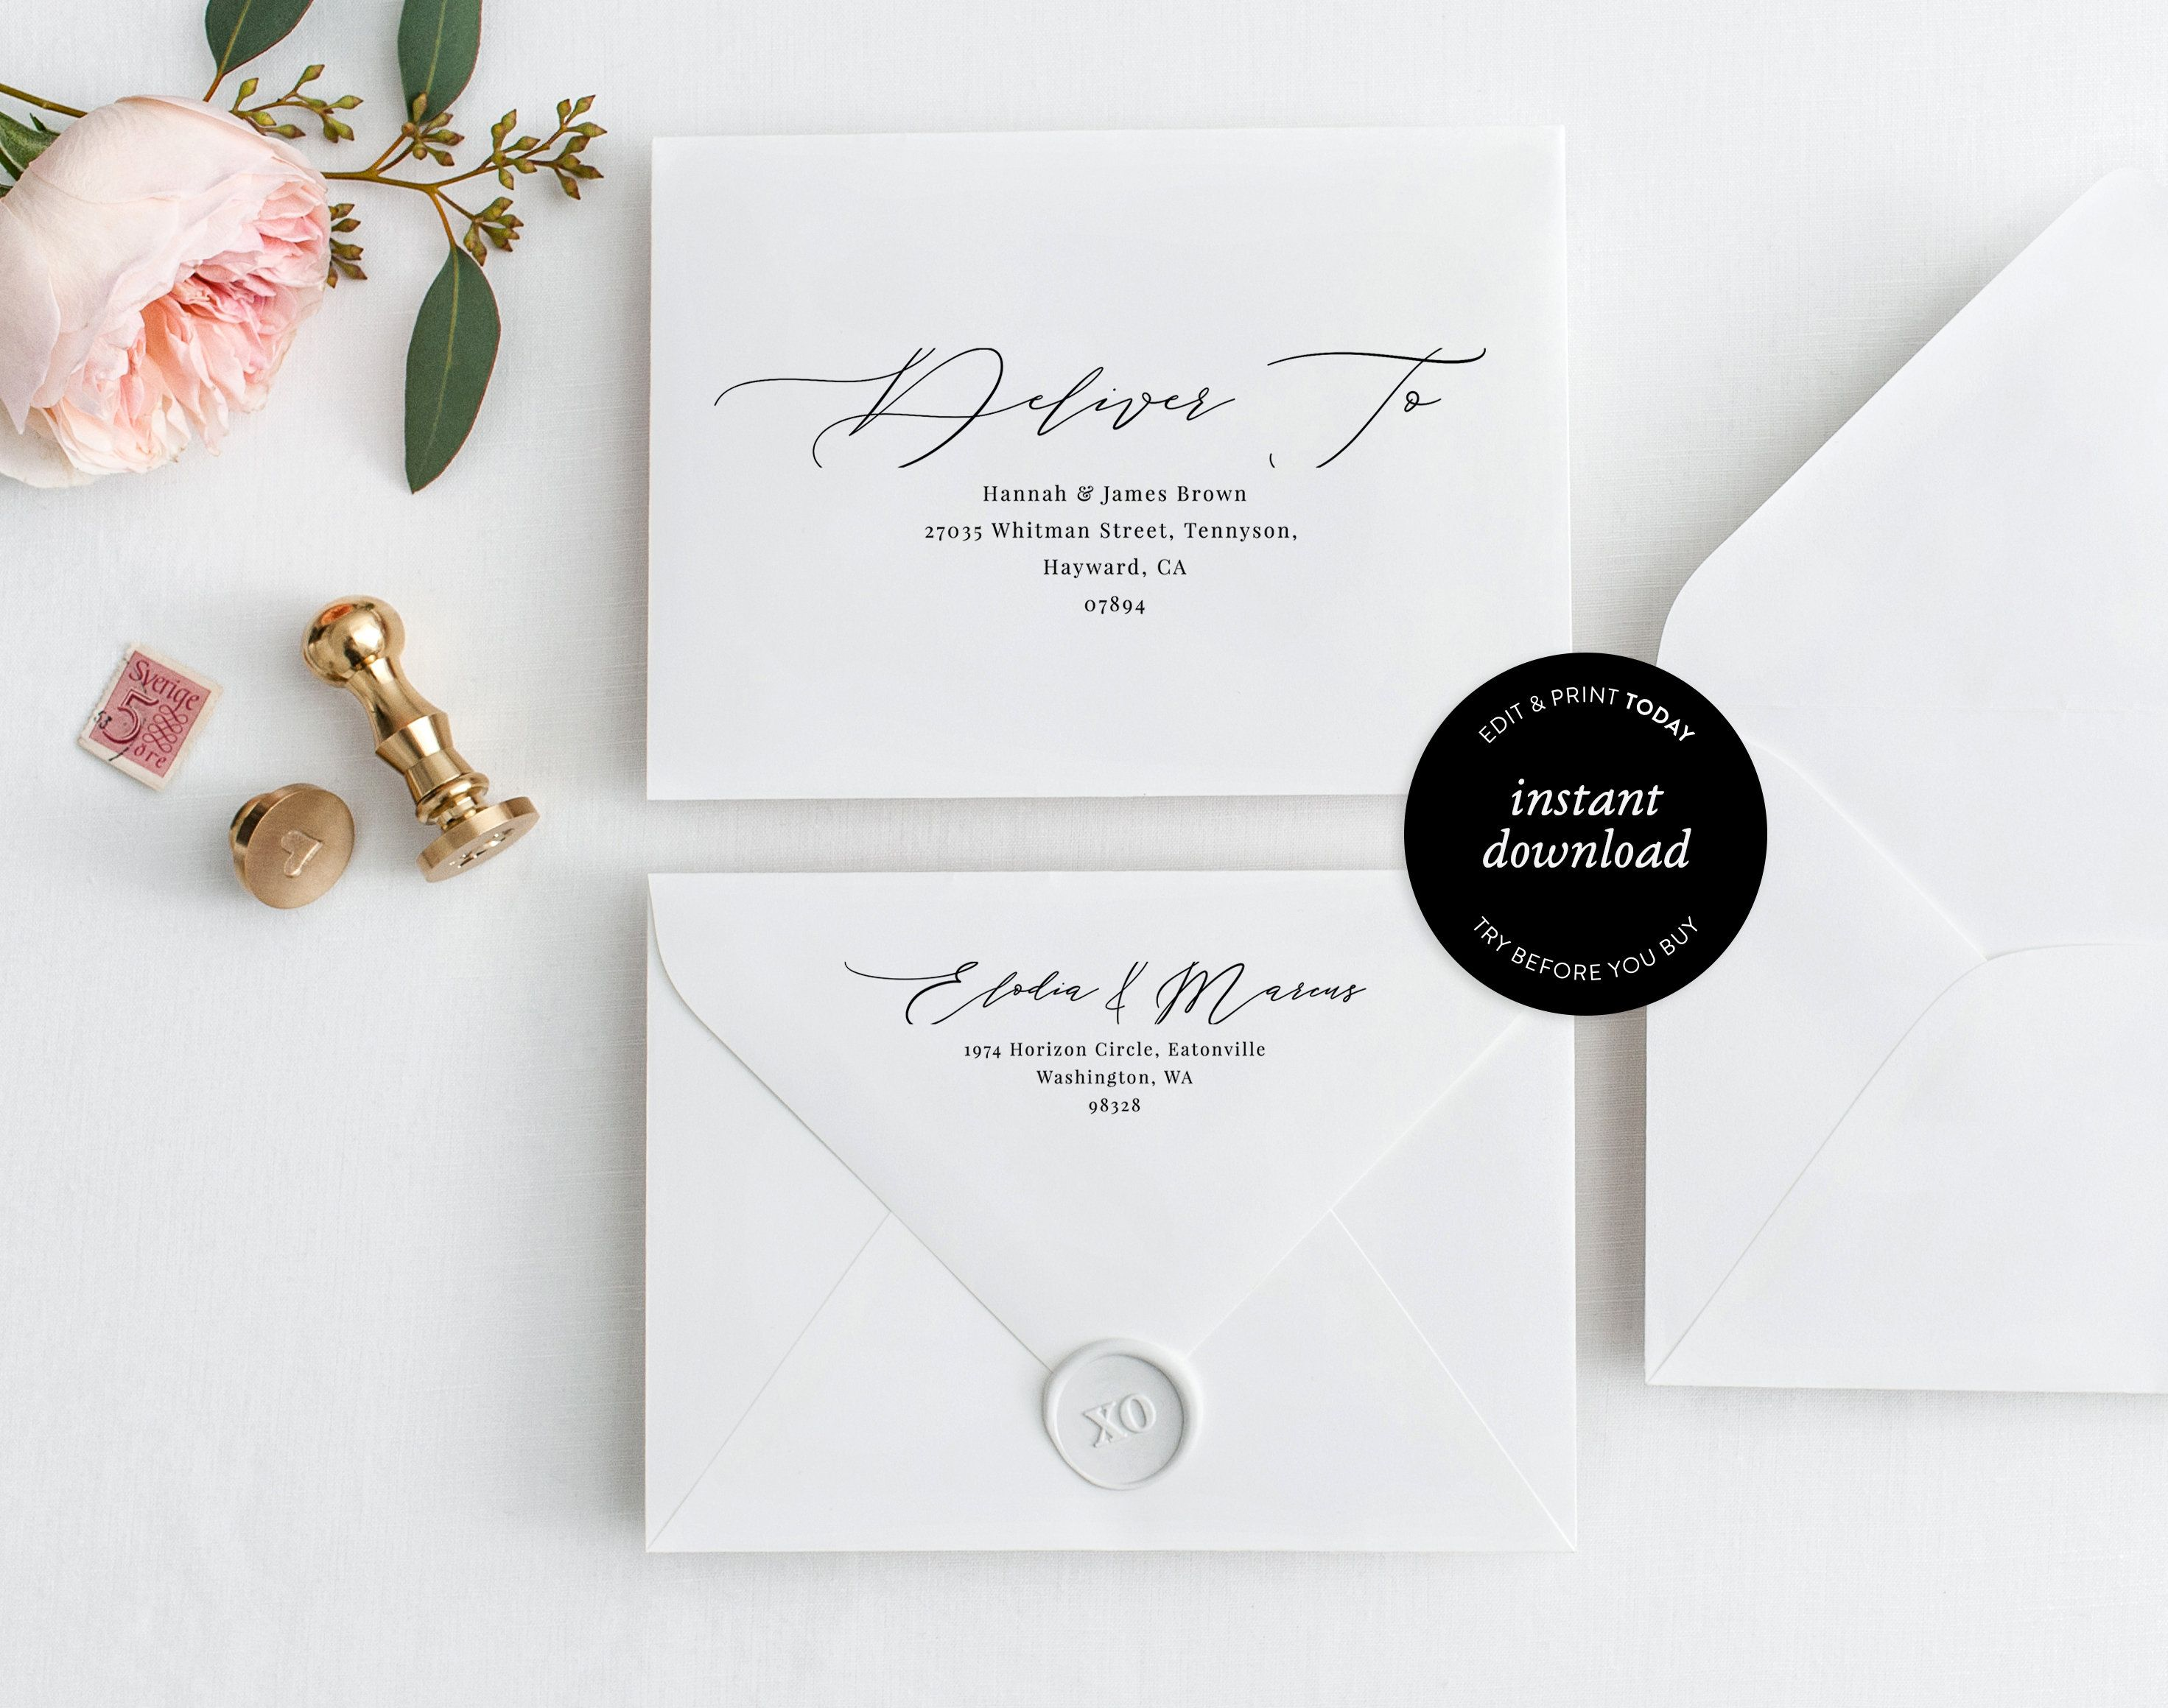 Printable Wedding Envelope Template Envelope Calligraphy A7 And A1 Editable Envelope Self Editing Template Templett Envelope Printable Wedding Envelopes Wedding Envelopes Wedding Printables